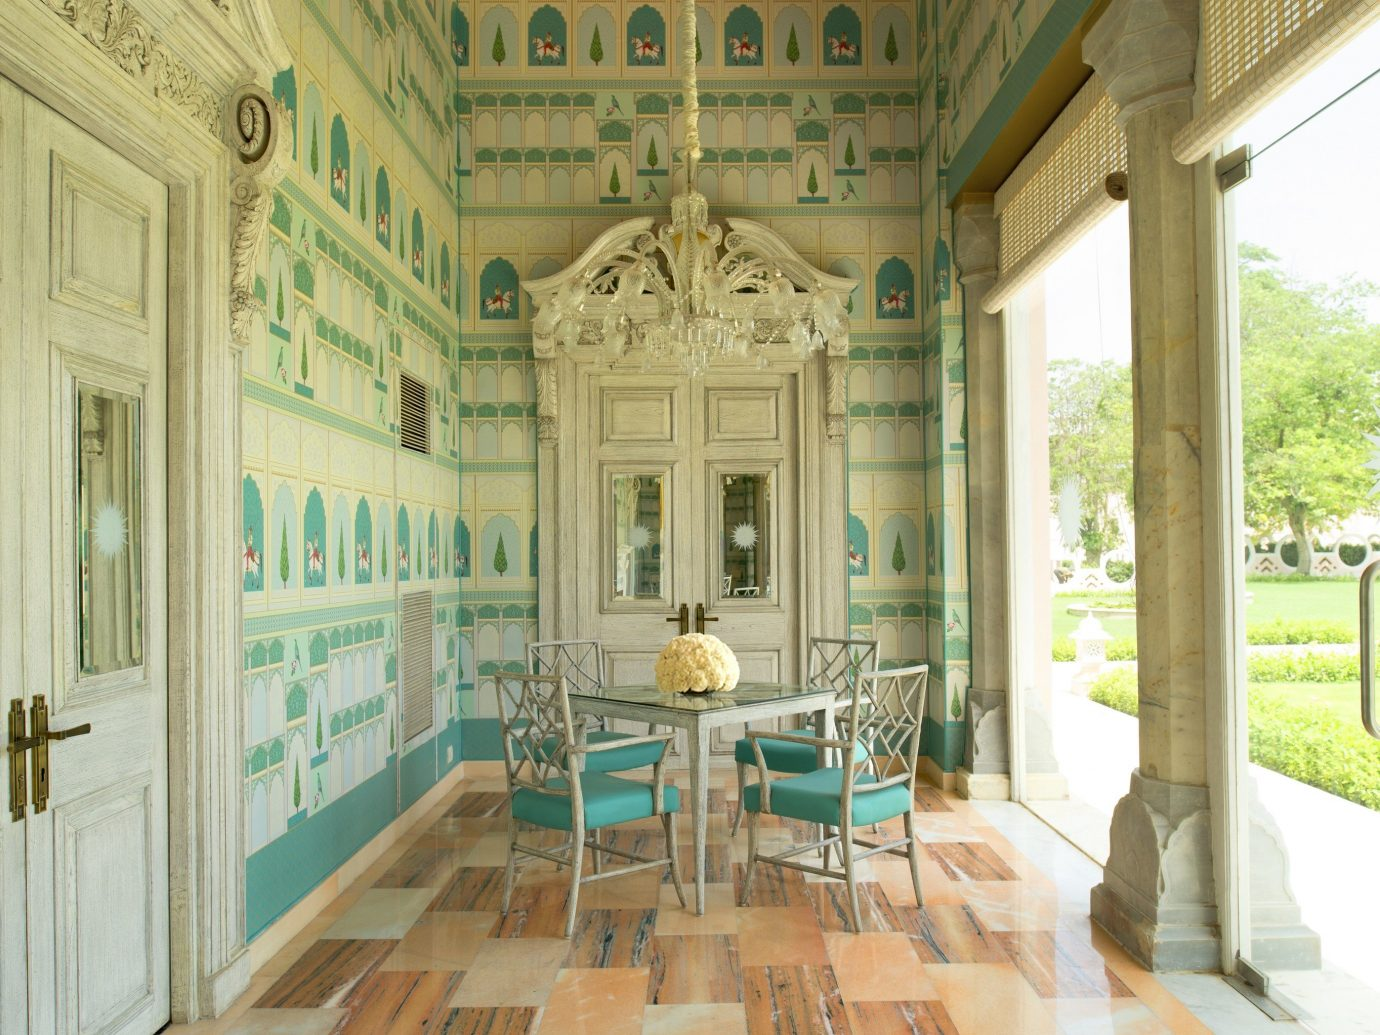 Style + Design floor property building room estate Architecture home mansion interior design palace Courtyard Lobby furniture